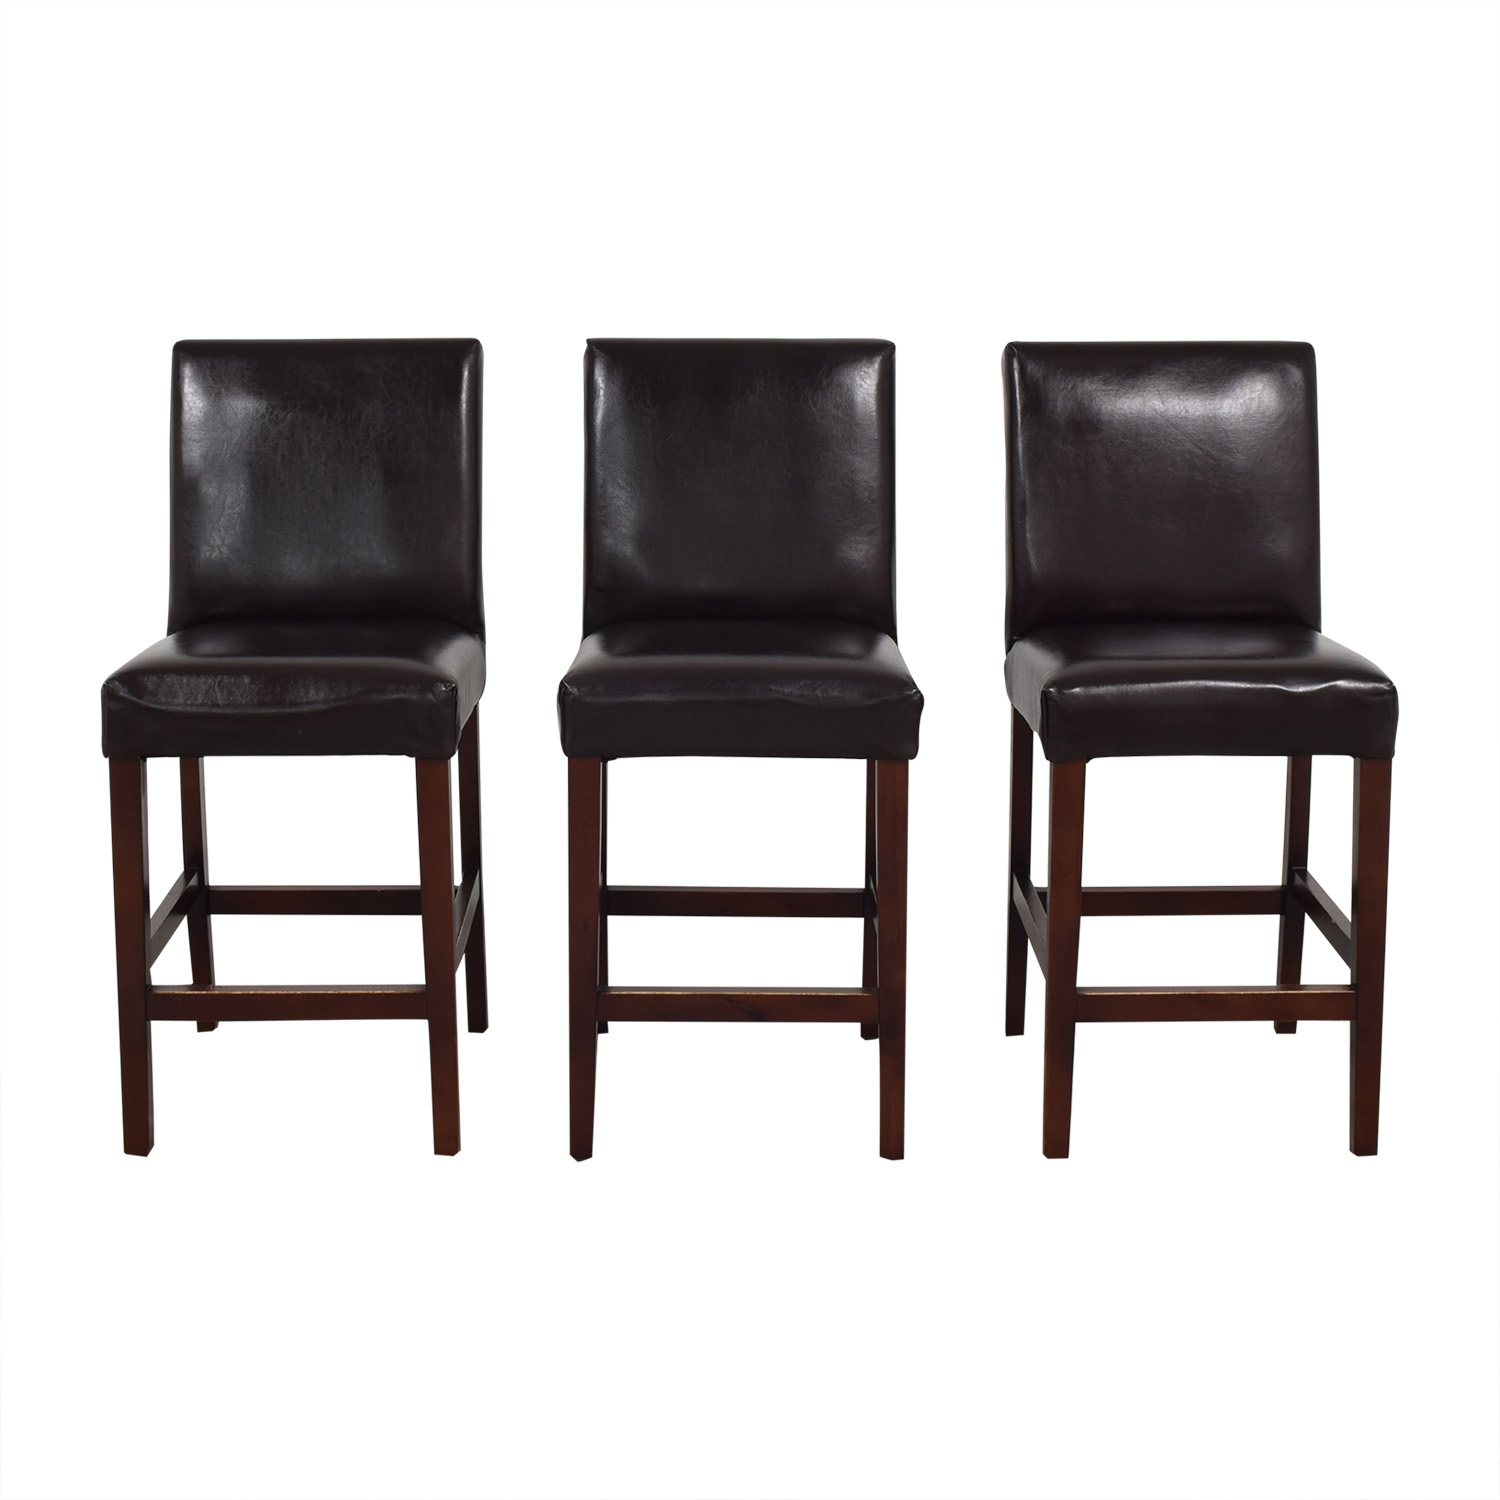 buy Four Hands Ashford James Counter Stools Four Hands Stools